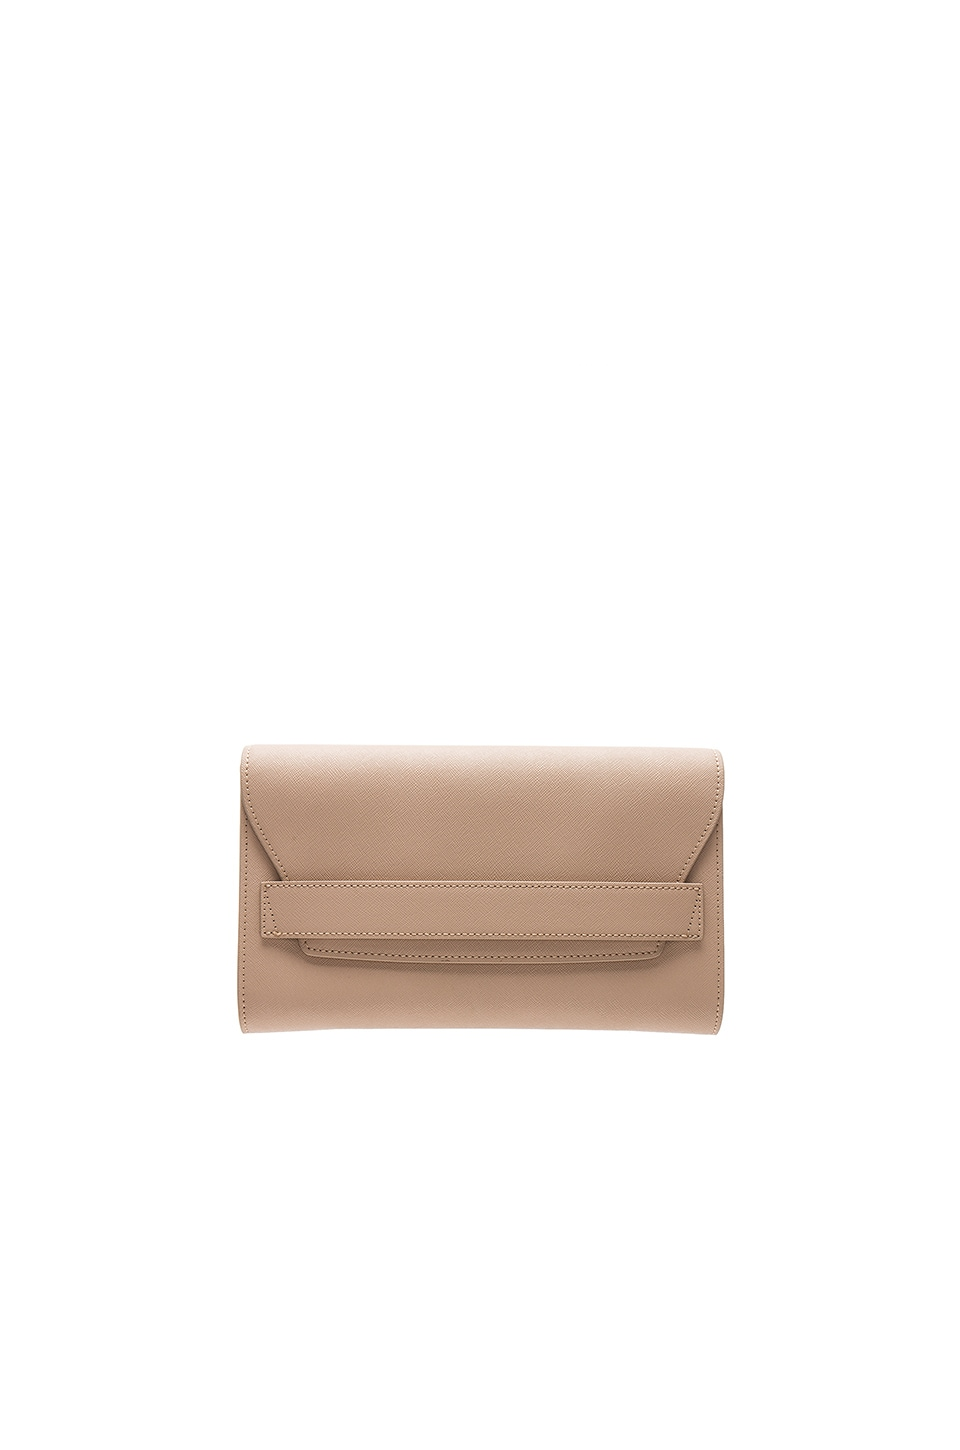 the daily edited POCHETTE